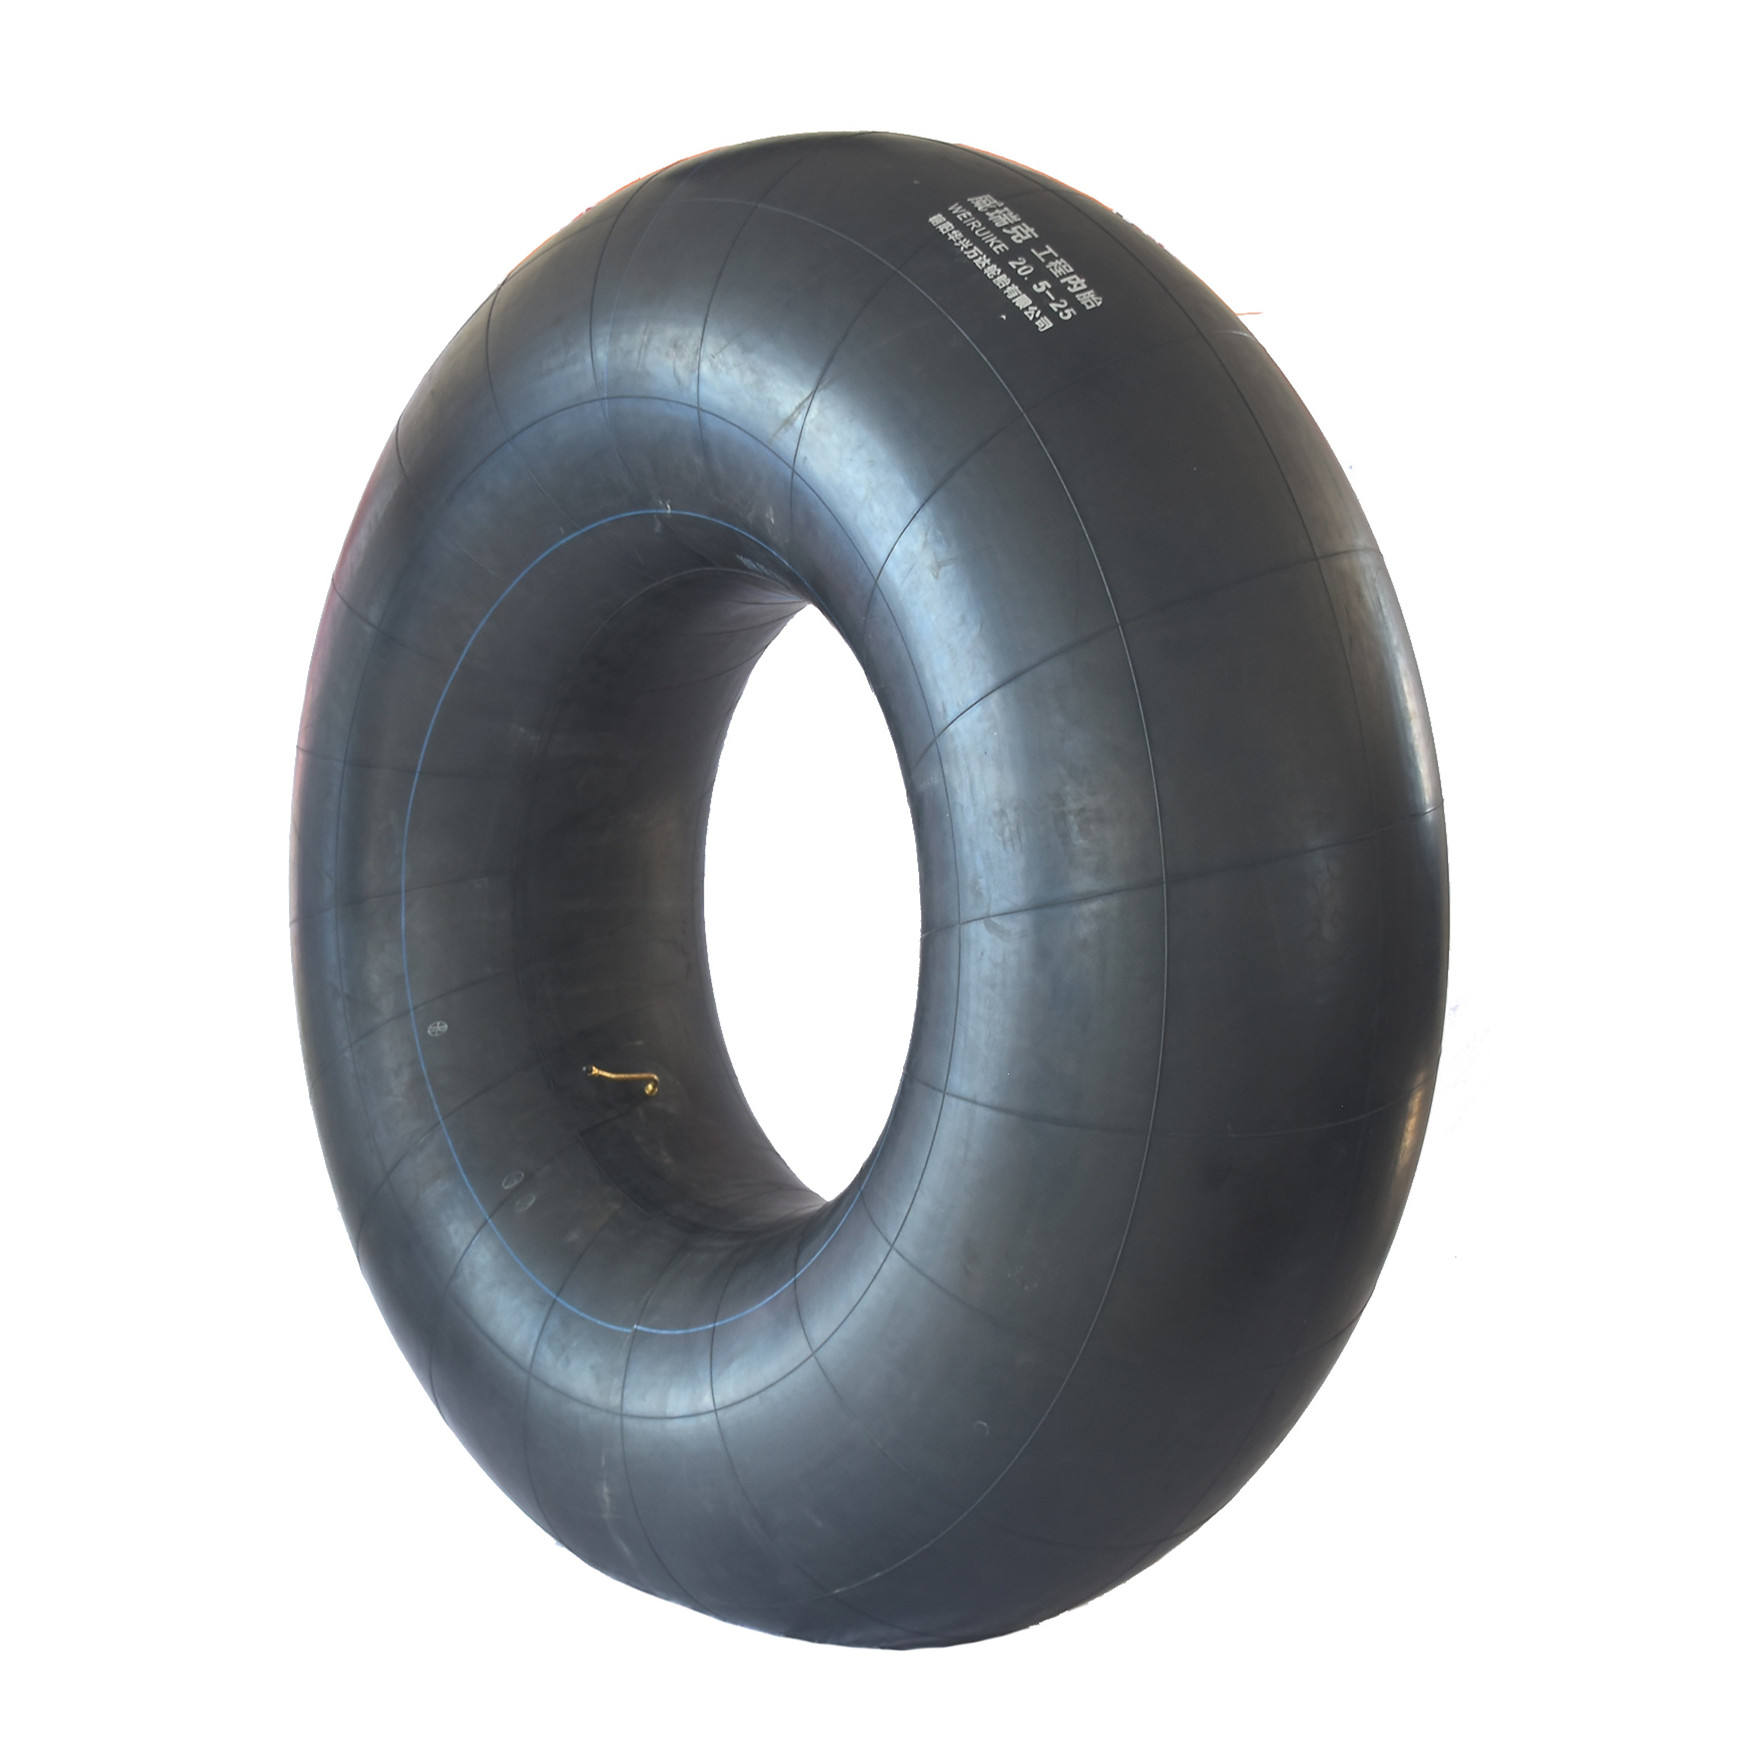 Best large 38 inch tractor trailer tyre inner tube 18.4-38